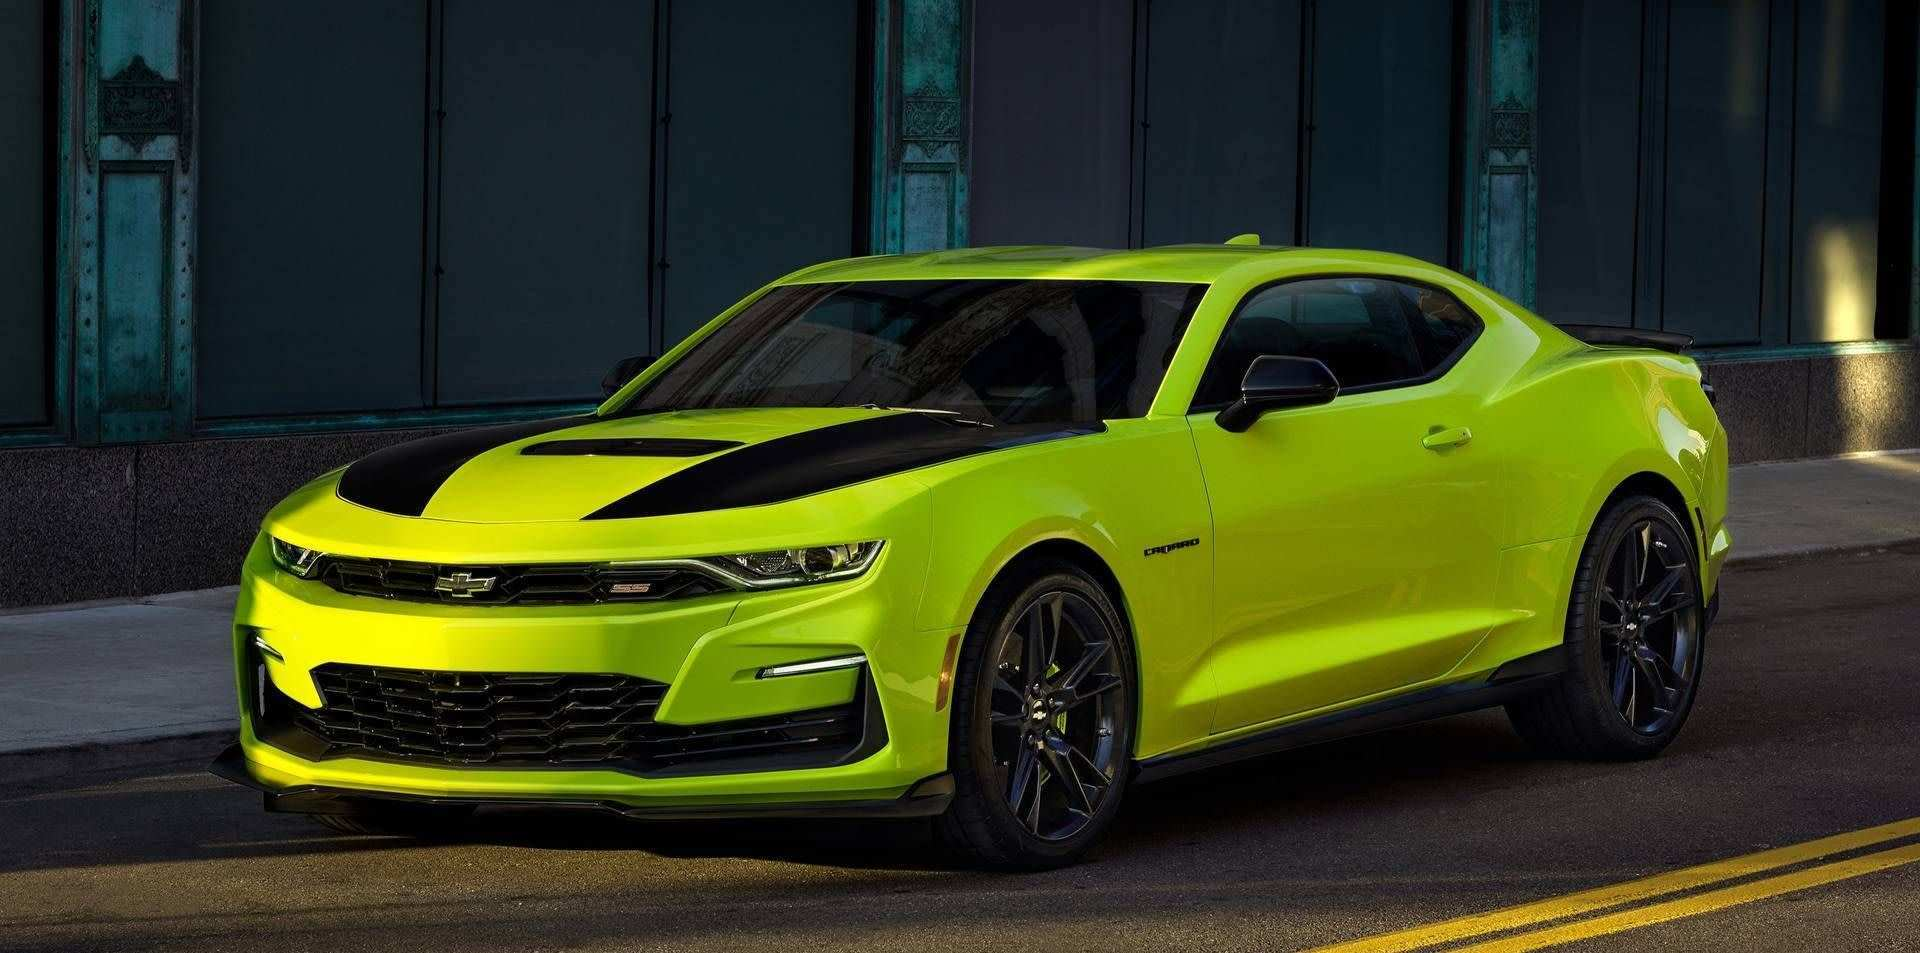 35 Best 2019 Chevrolet Camaro Wallpaper